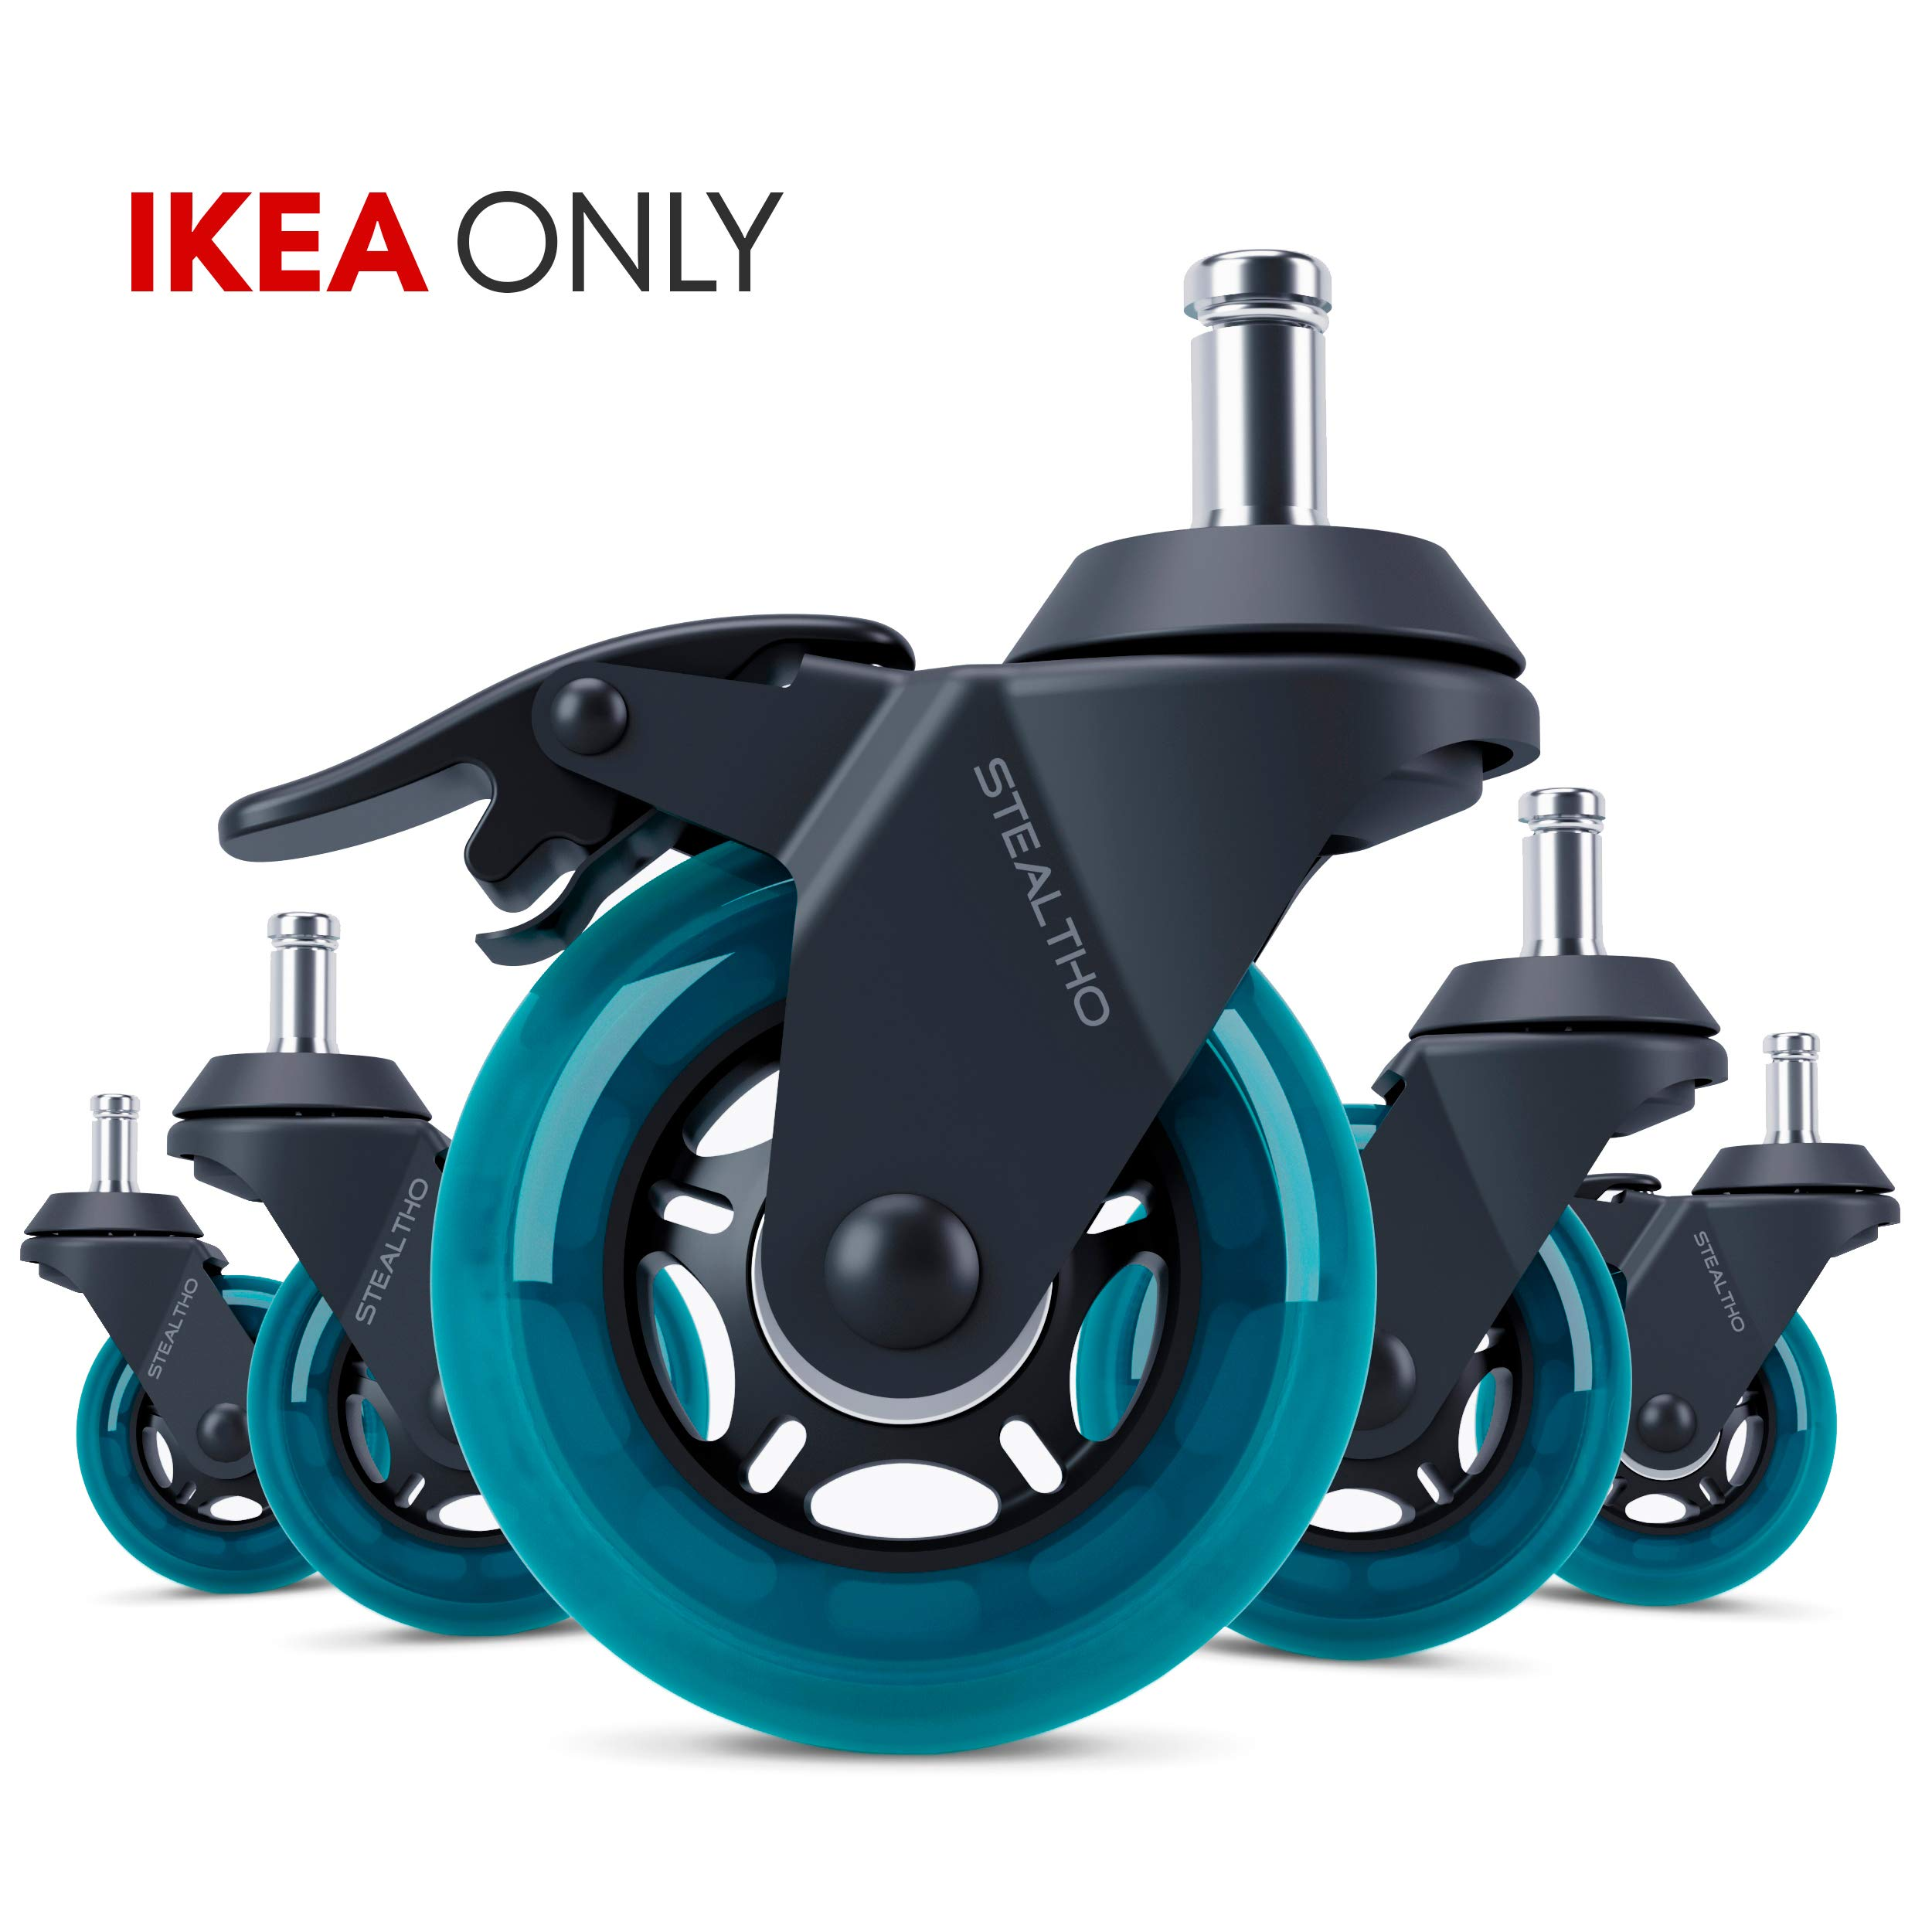 STEALTHO Replacement IKEA Office Chair Caster Wheels Set of 5 - Protect Your Floor - Quick & Quiet Rolling Over The Cables - No More Chair Mat Needed - with Brakes - Blue Polyurethane - IKEA Stem 3/8''